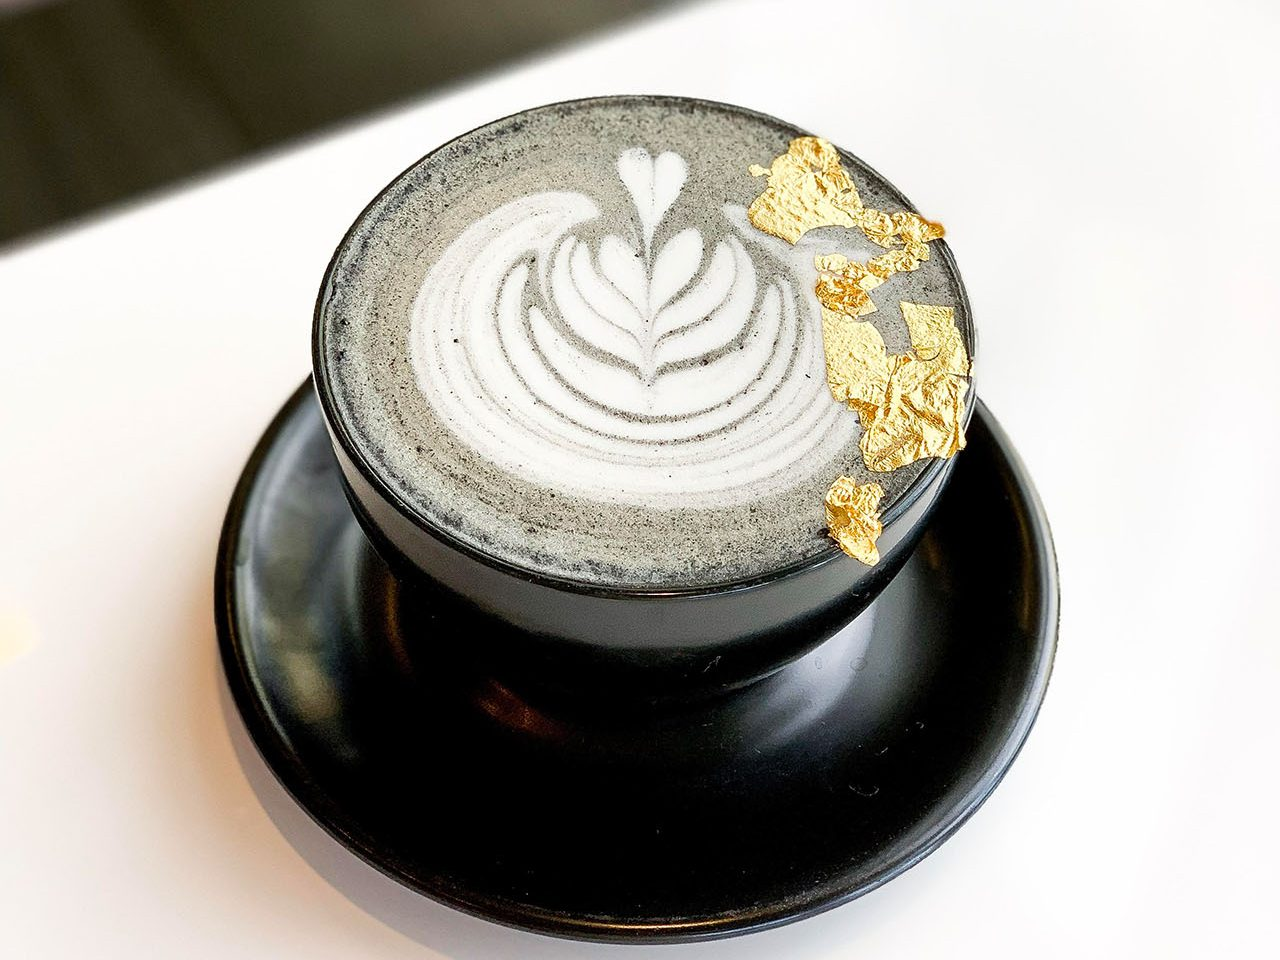 Insta-Hit: The Black and Gold Latte at Feen Coffee in Huntington Beach